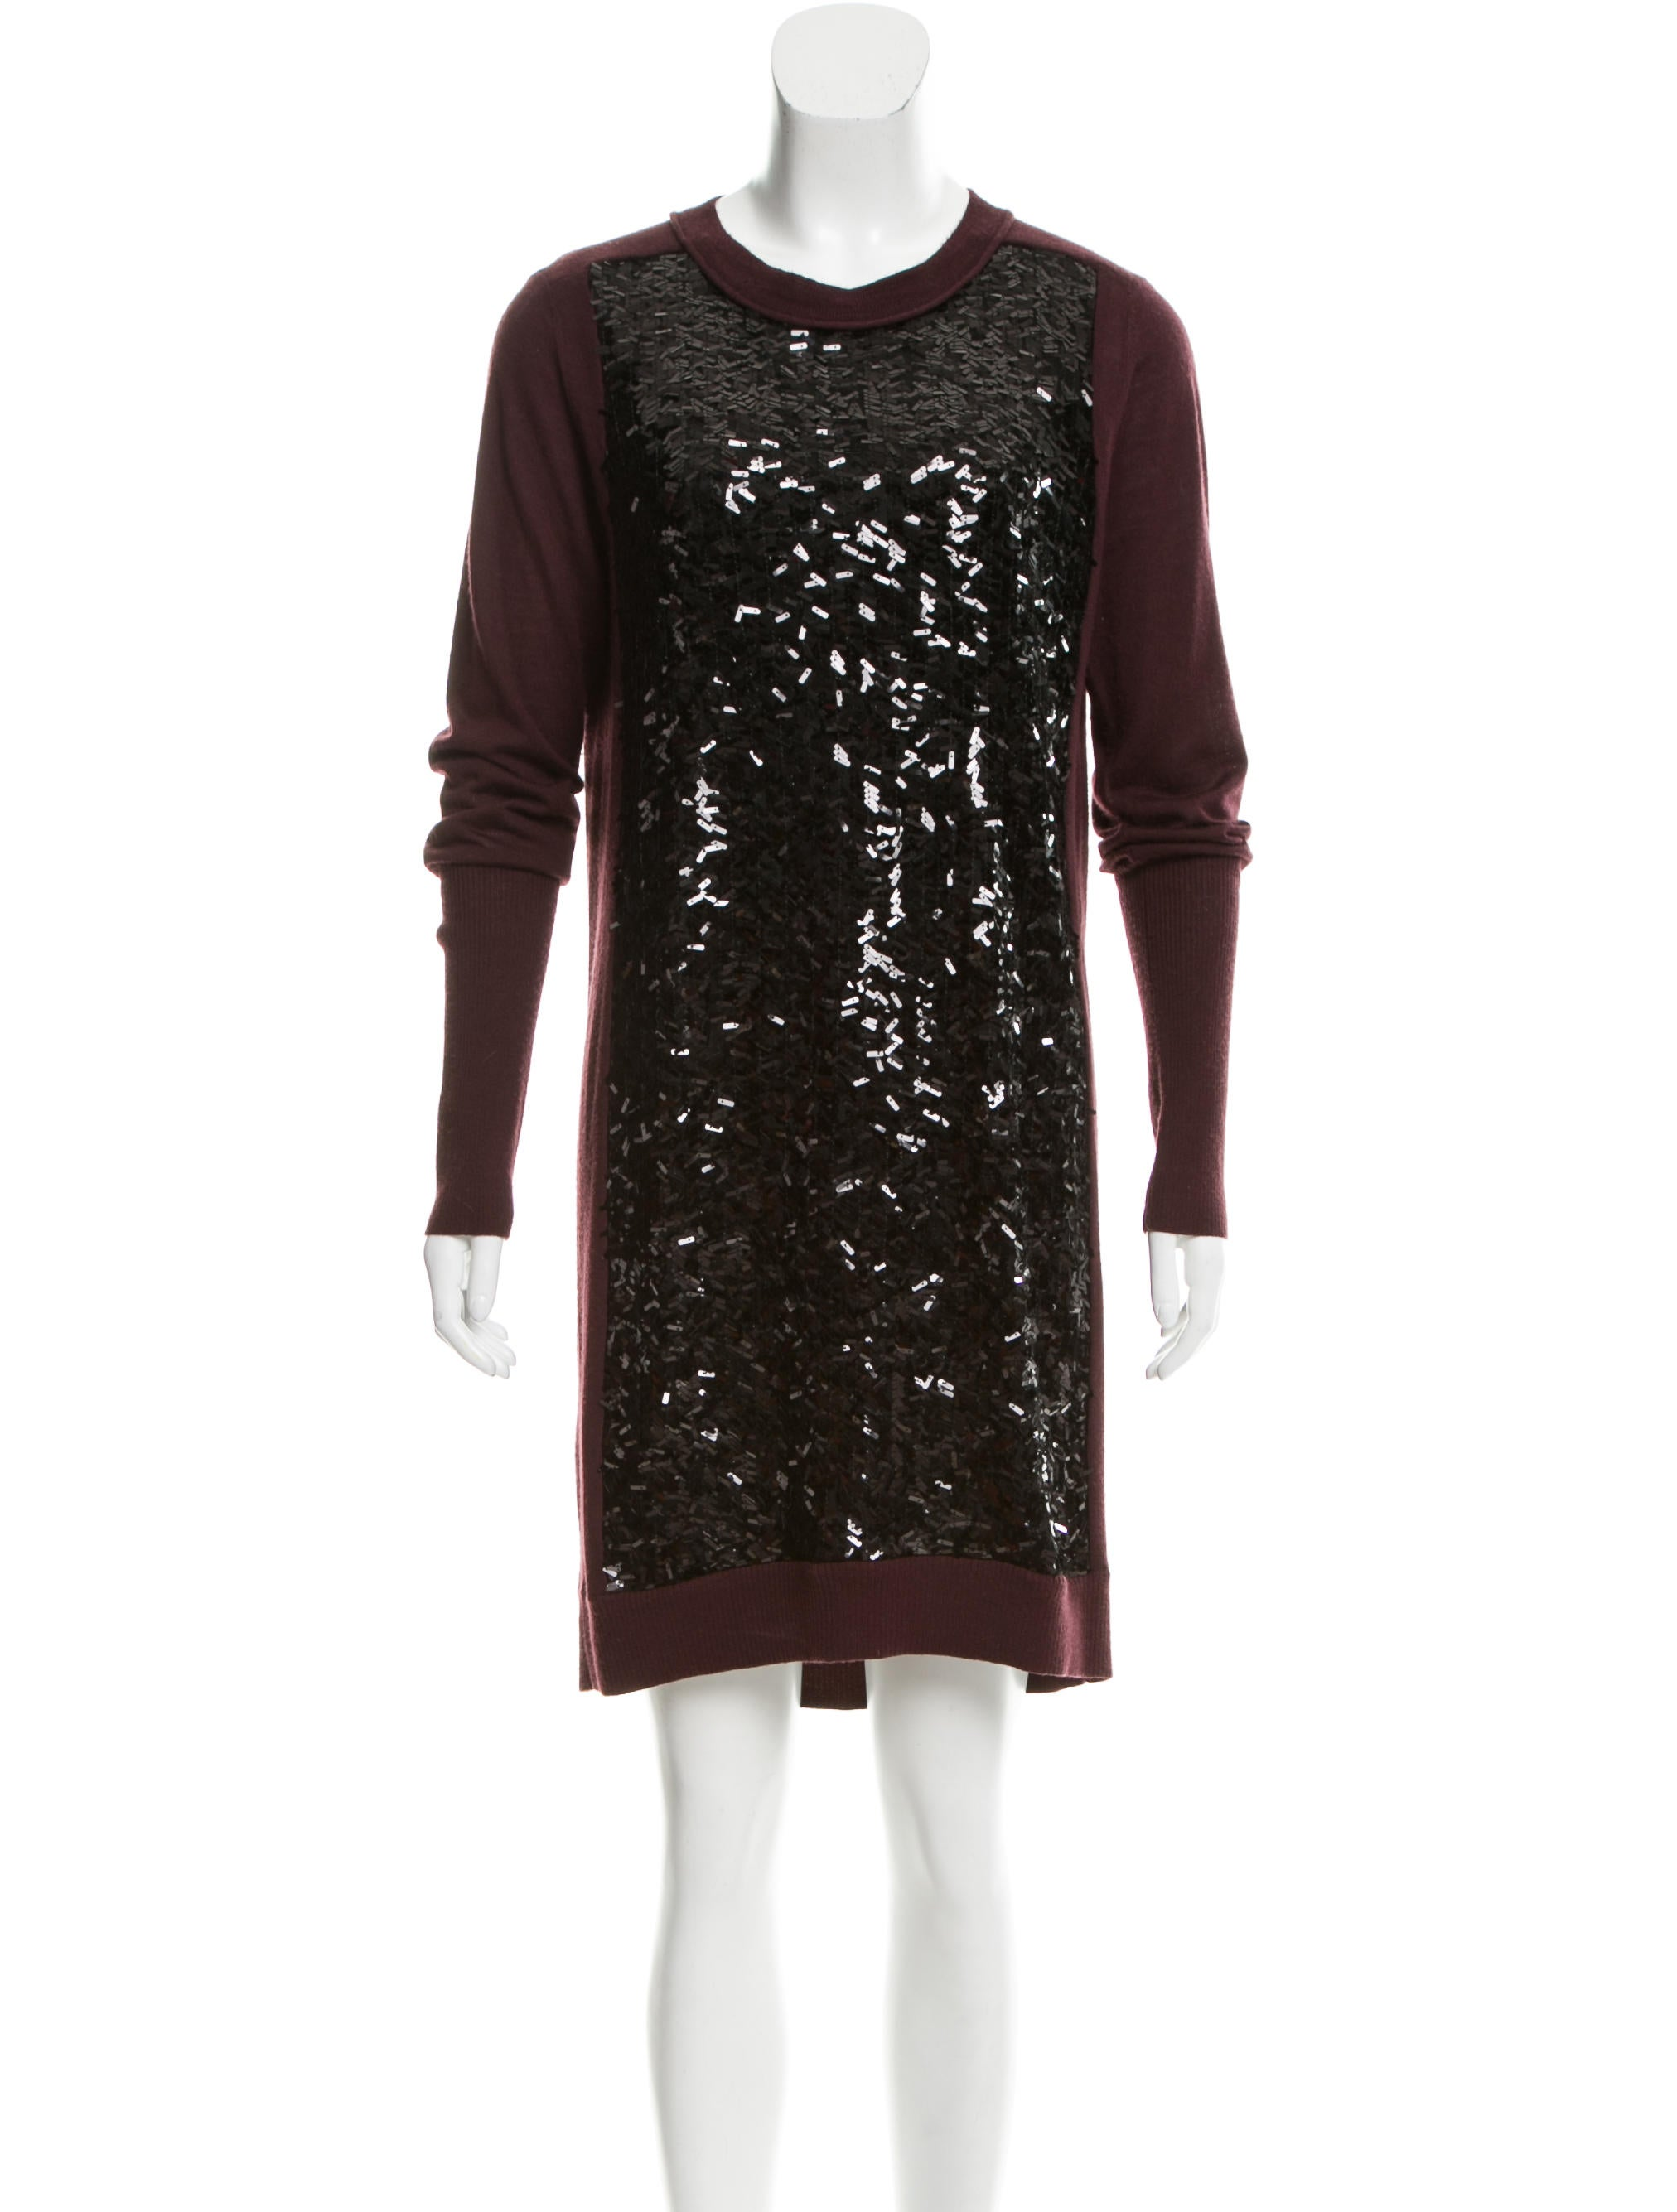 Diane von Furstenberg Danette Wool Dress For Sale Discount Sale Free Shipping Wholesale Price Get Online Free Shipping For Cheap wiqhjMjmg